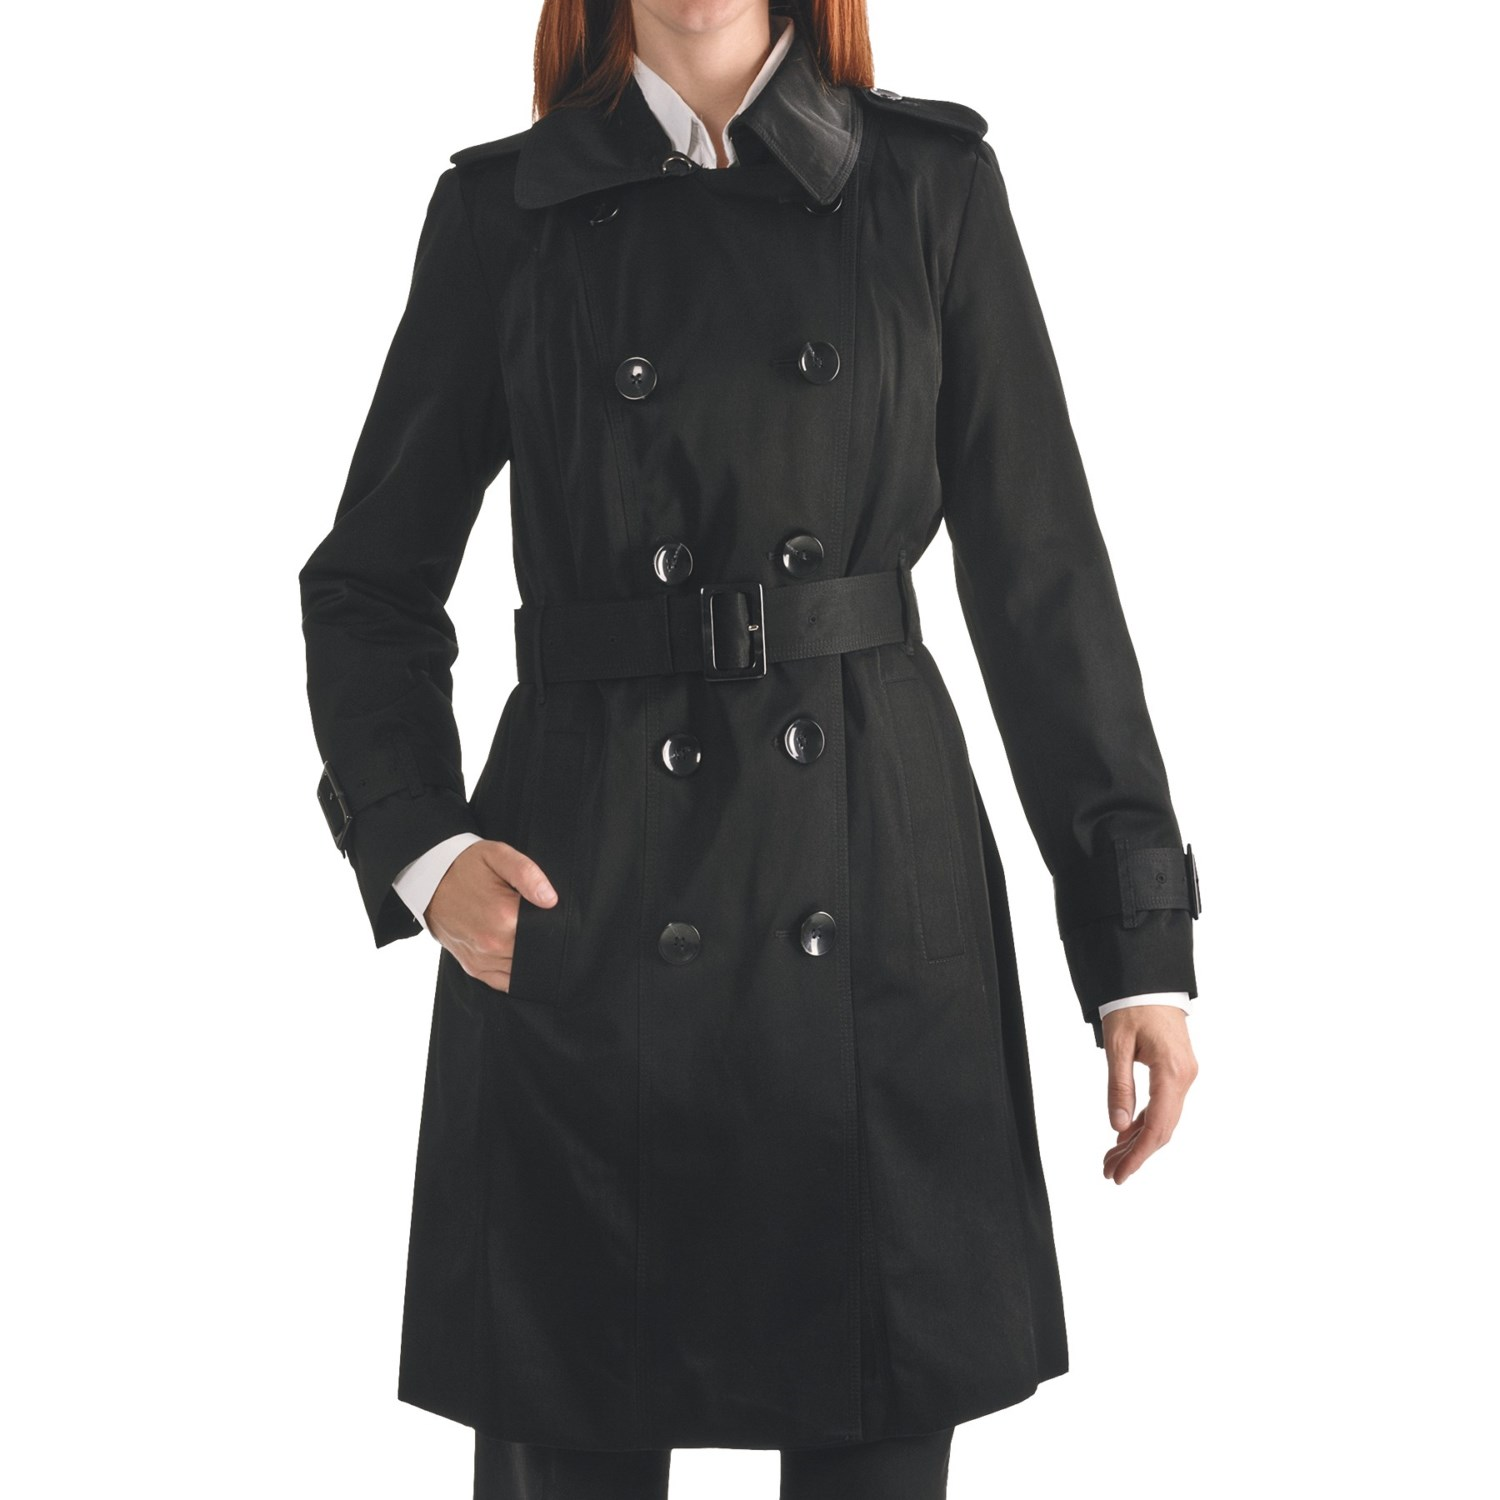 London Fog Snakeskinprint Trench Coat in Black | Lyst